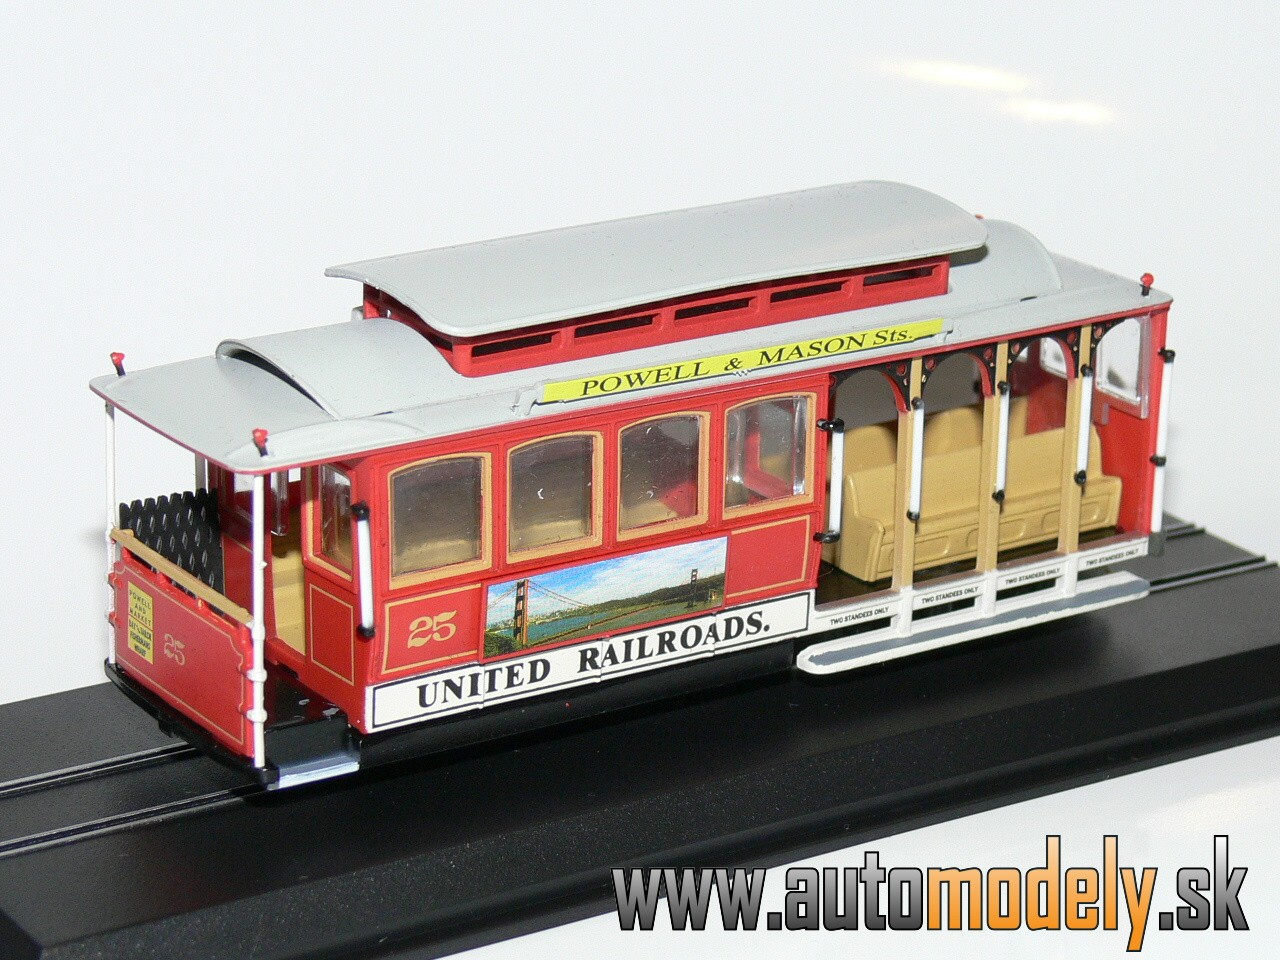 Cable Car (Ferries & Cliff) San Francisco 1888-1890 - 1:87